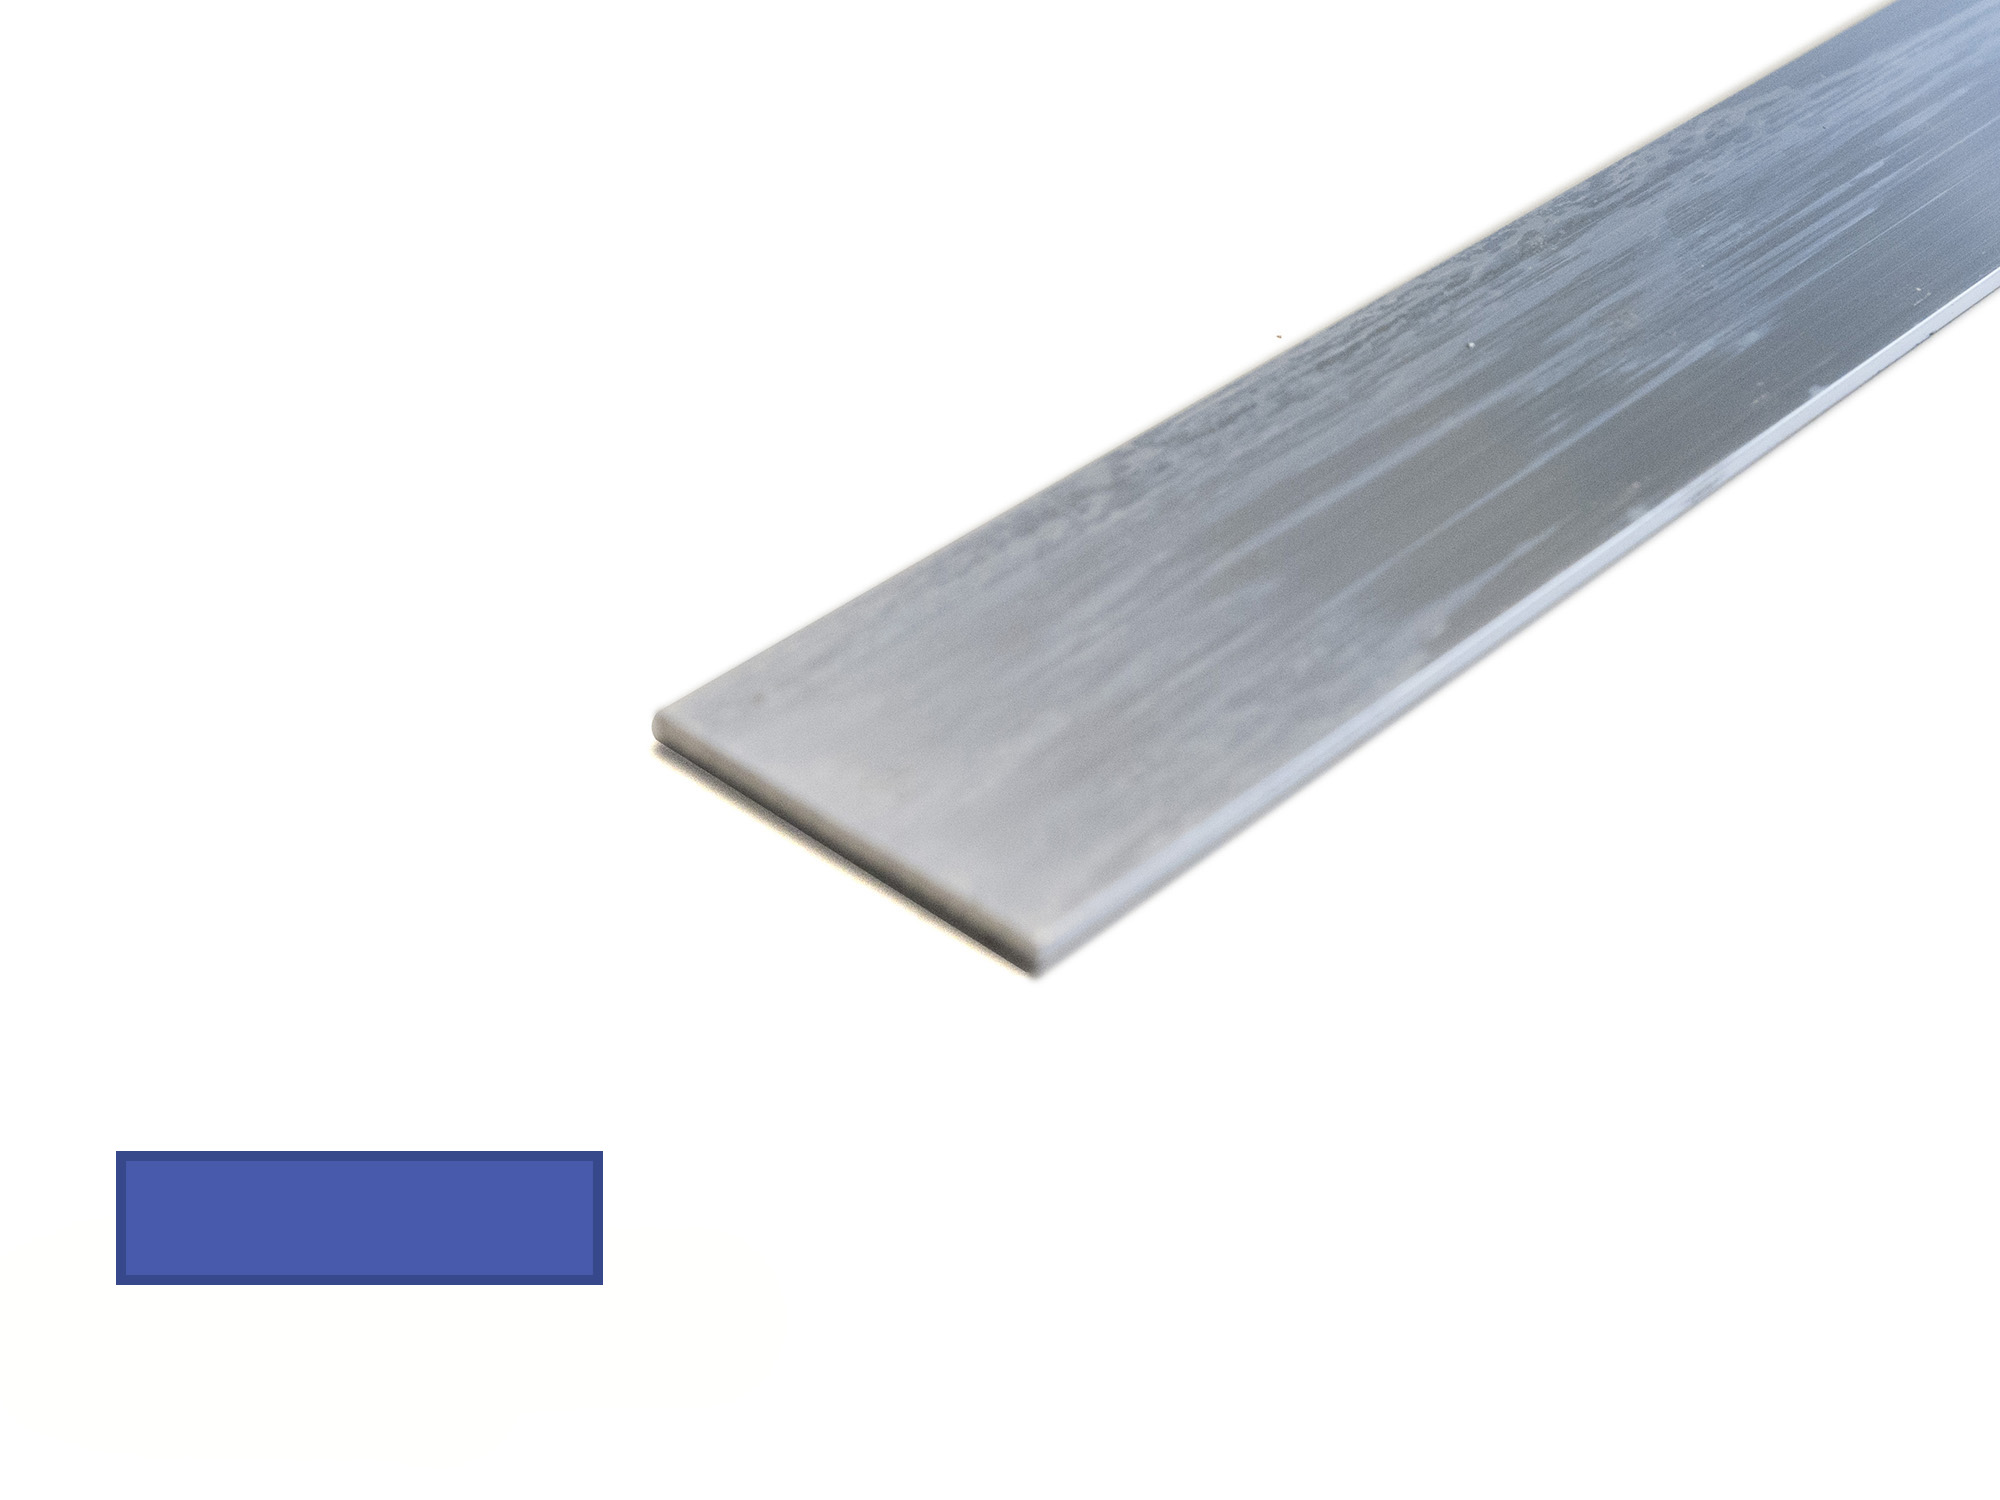 aluminium strip 15 x 8mm